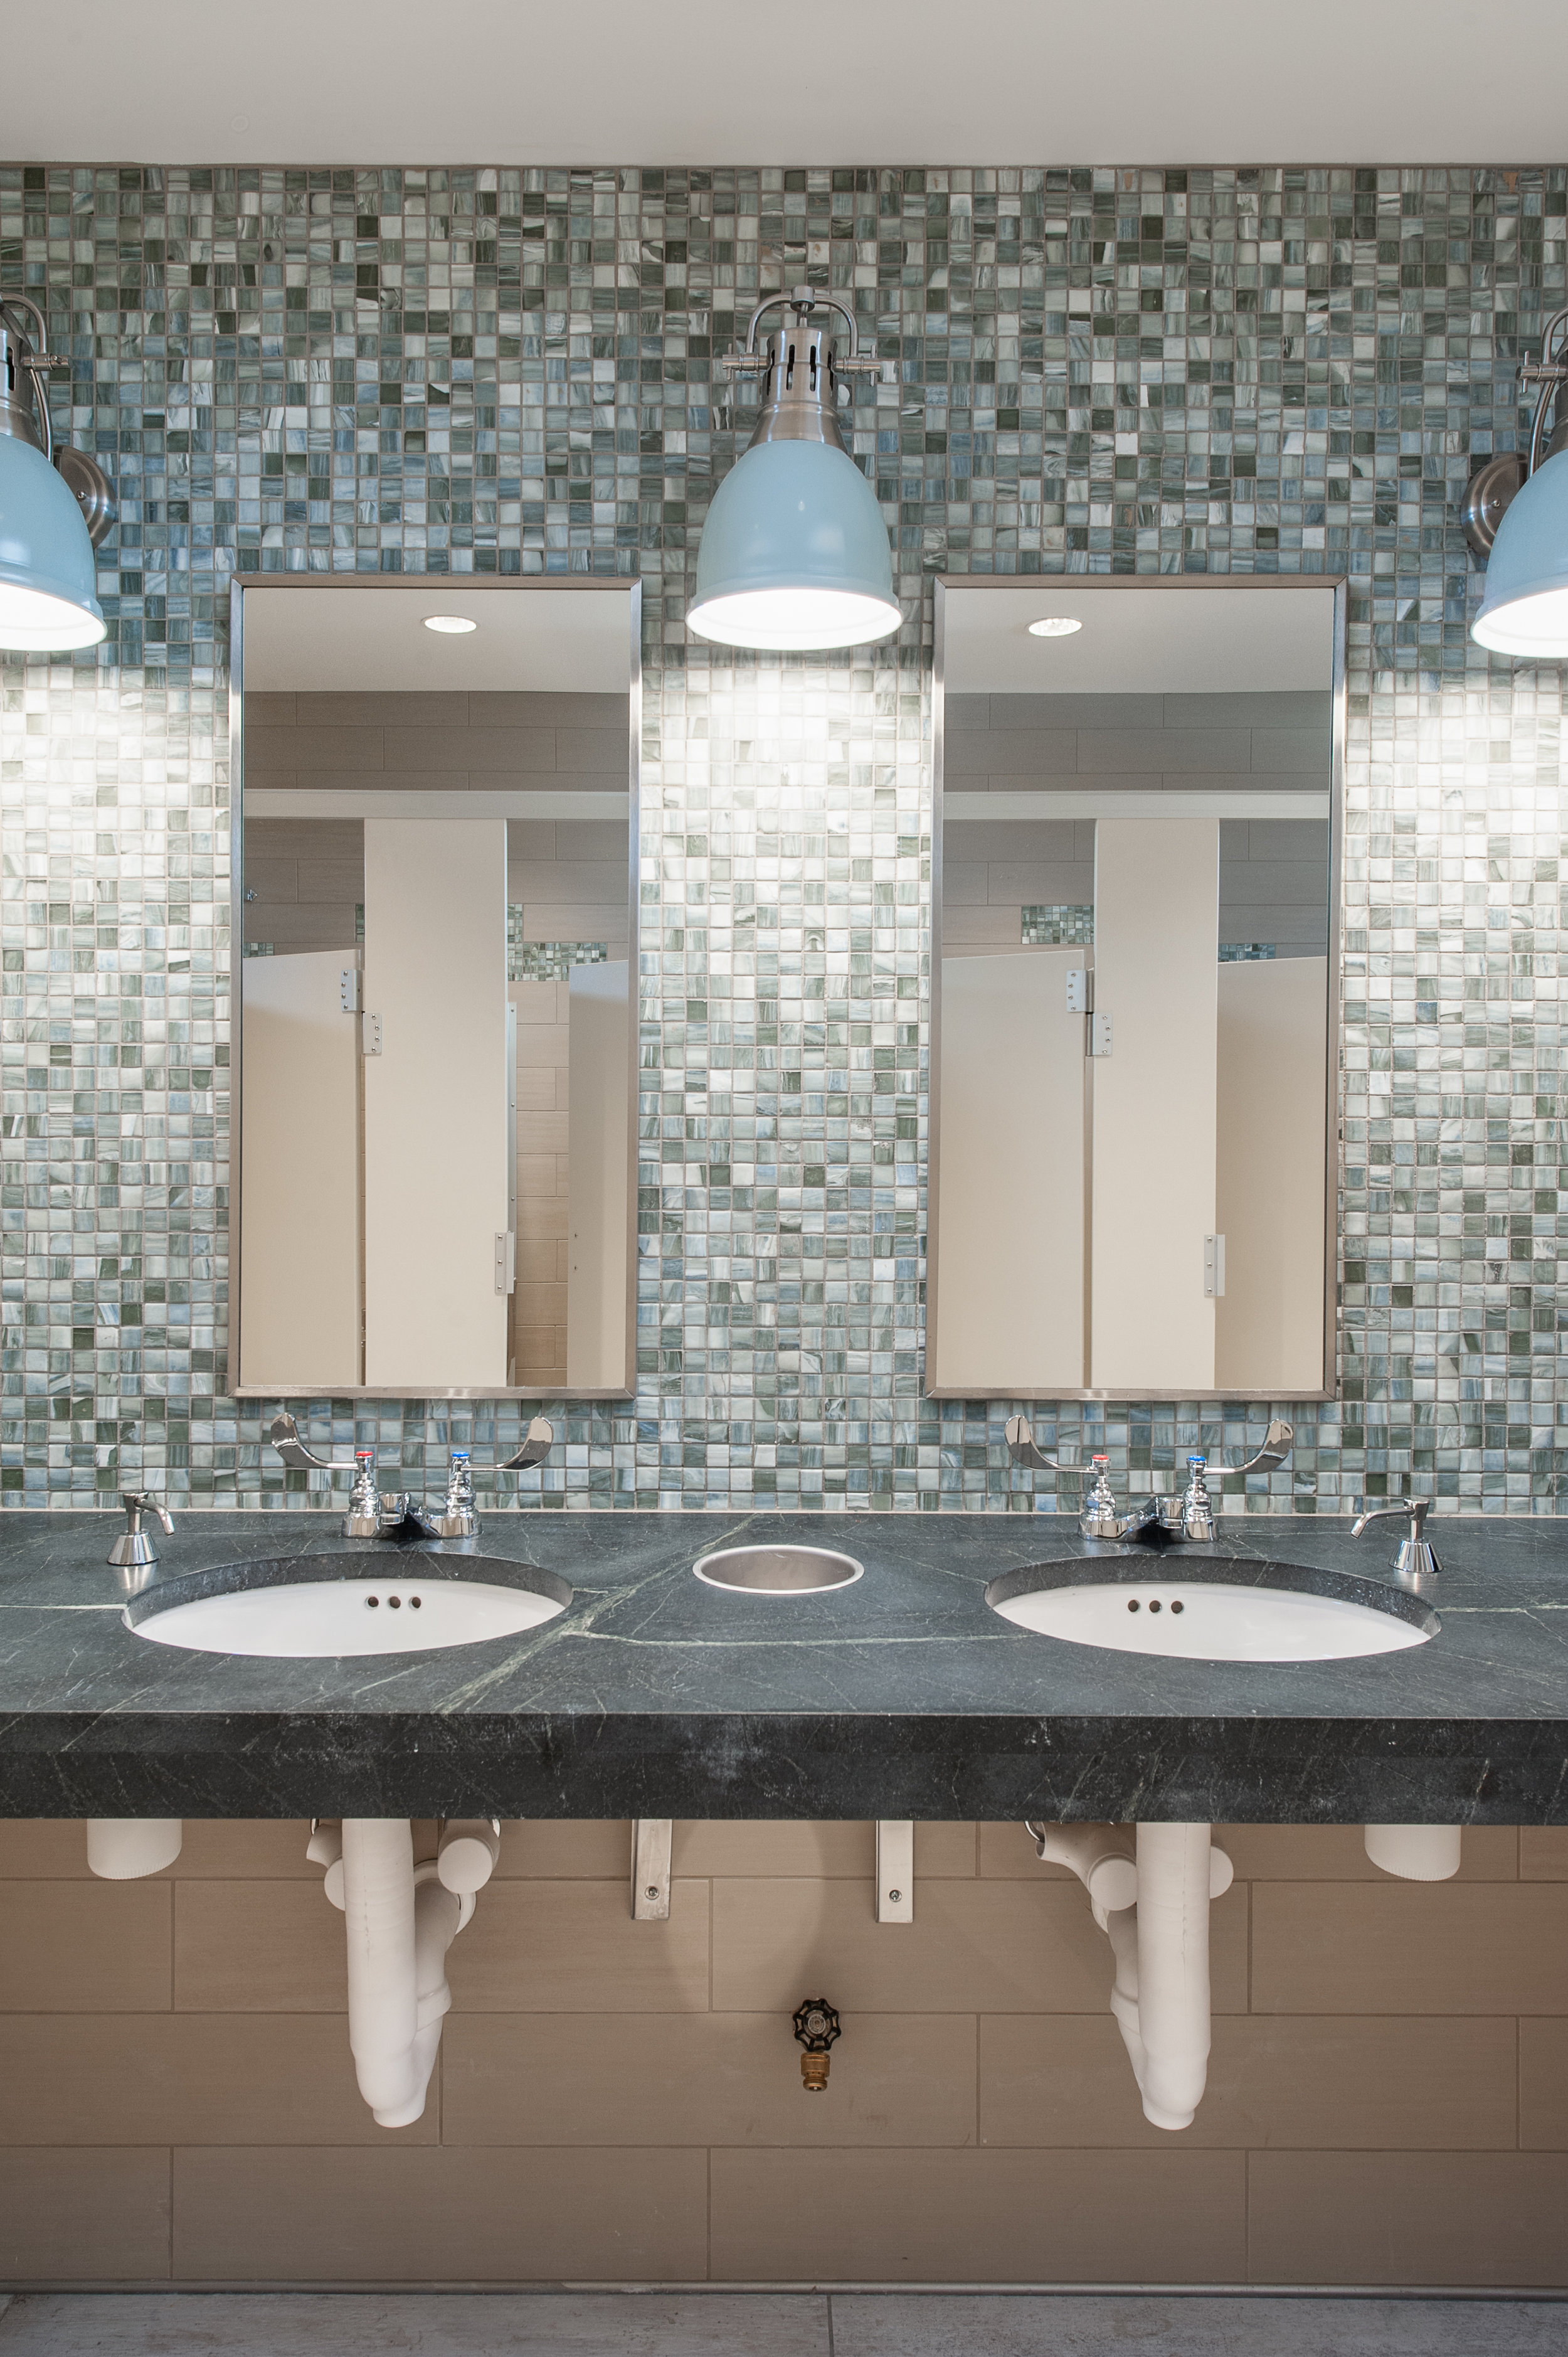 TILE TUESDAY